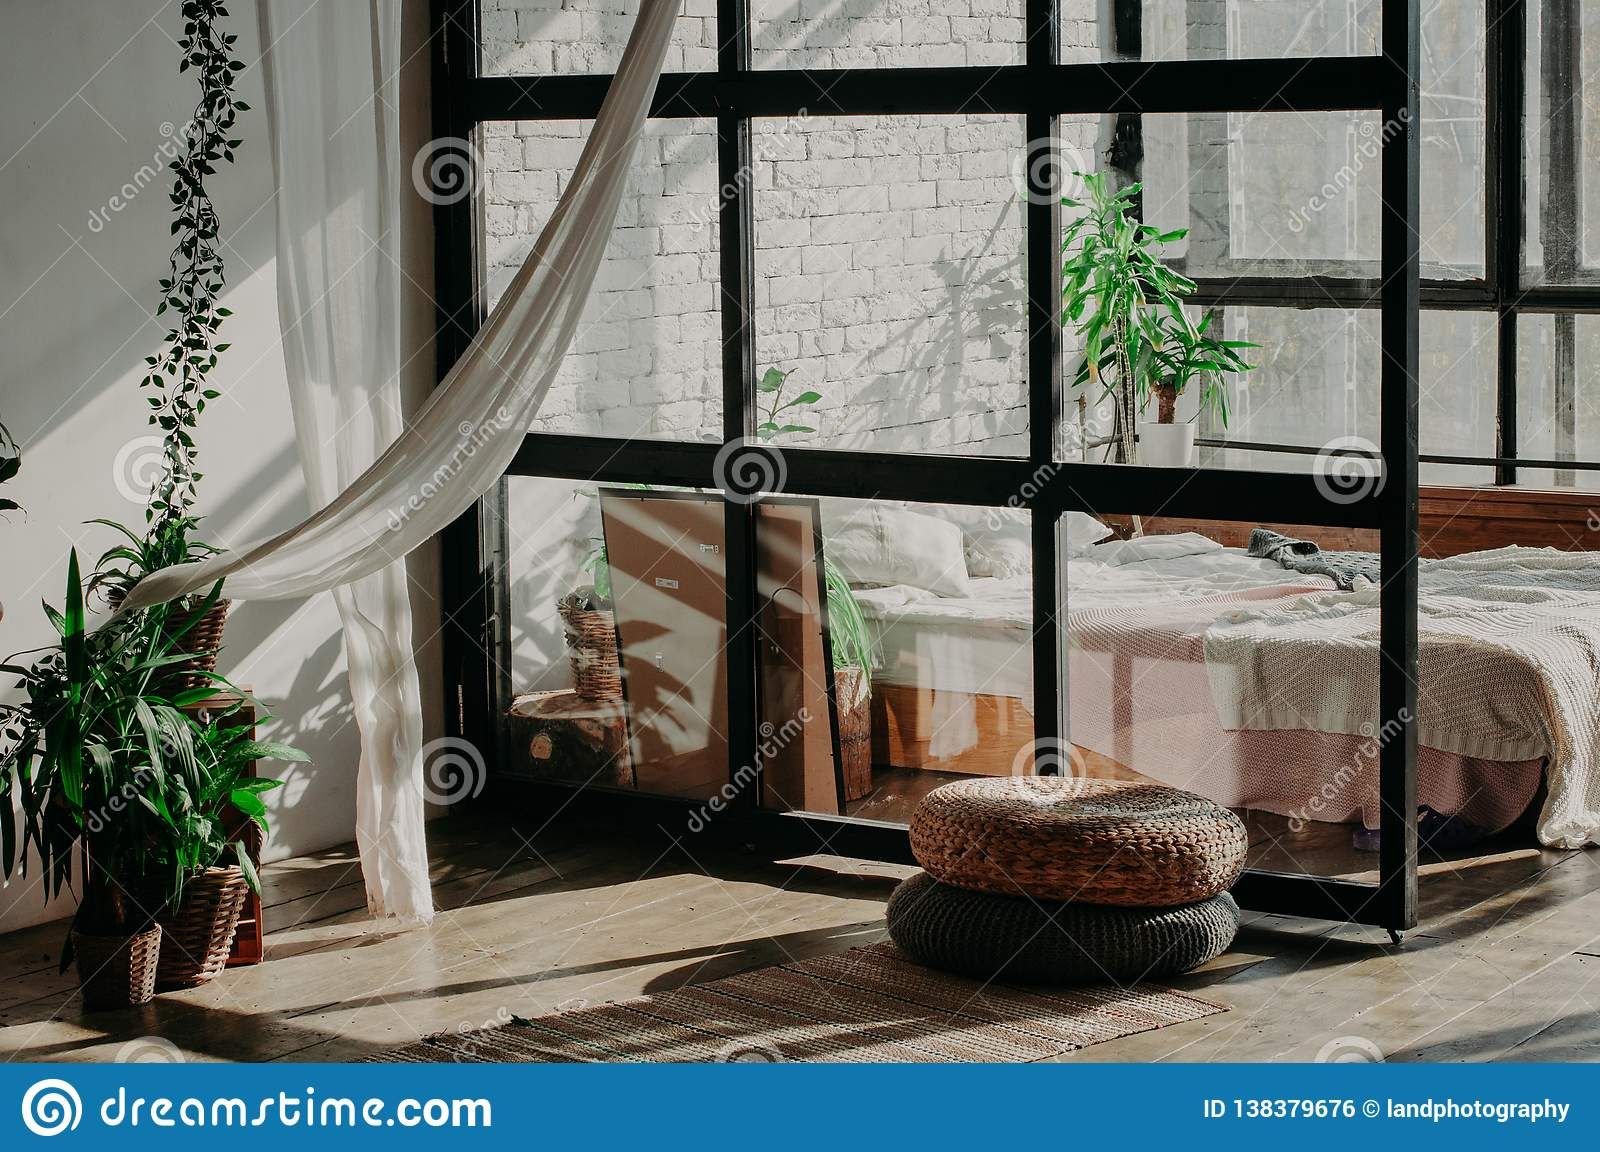 Bedroom Loft Interior Bed Pillows Green Plant And Wall With White Bricks Stock Photo Image Of Decoration Modern 138379676